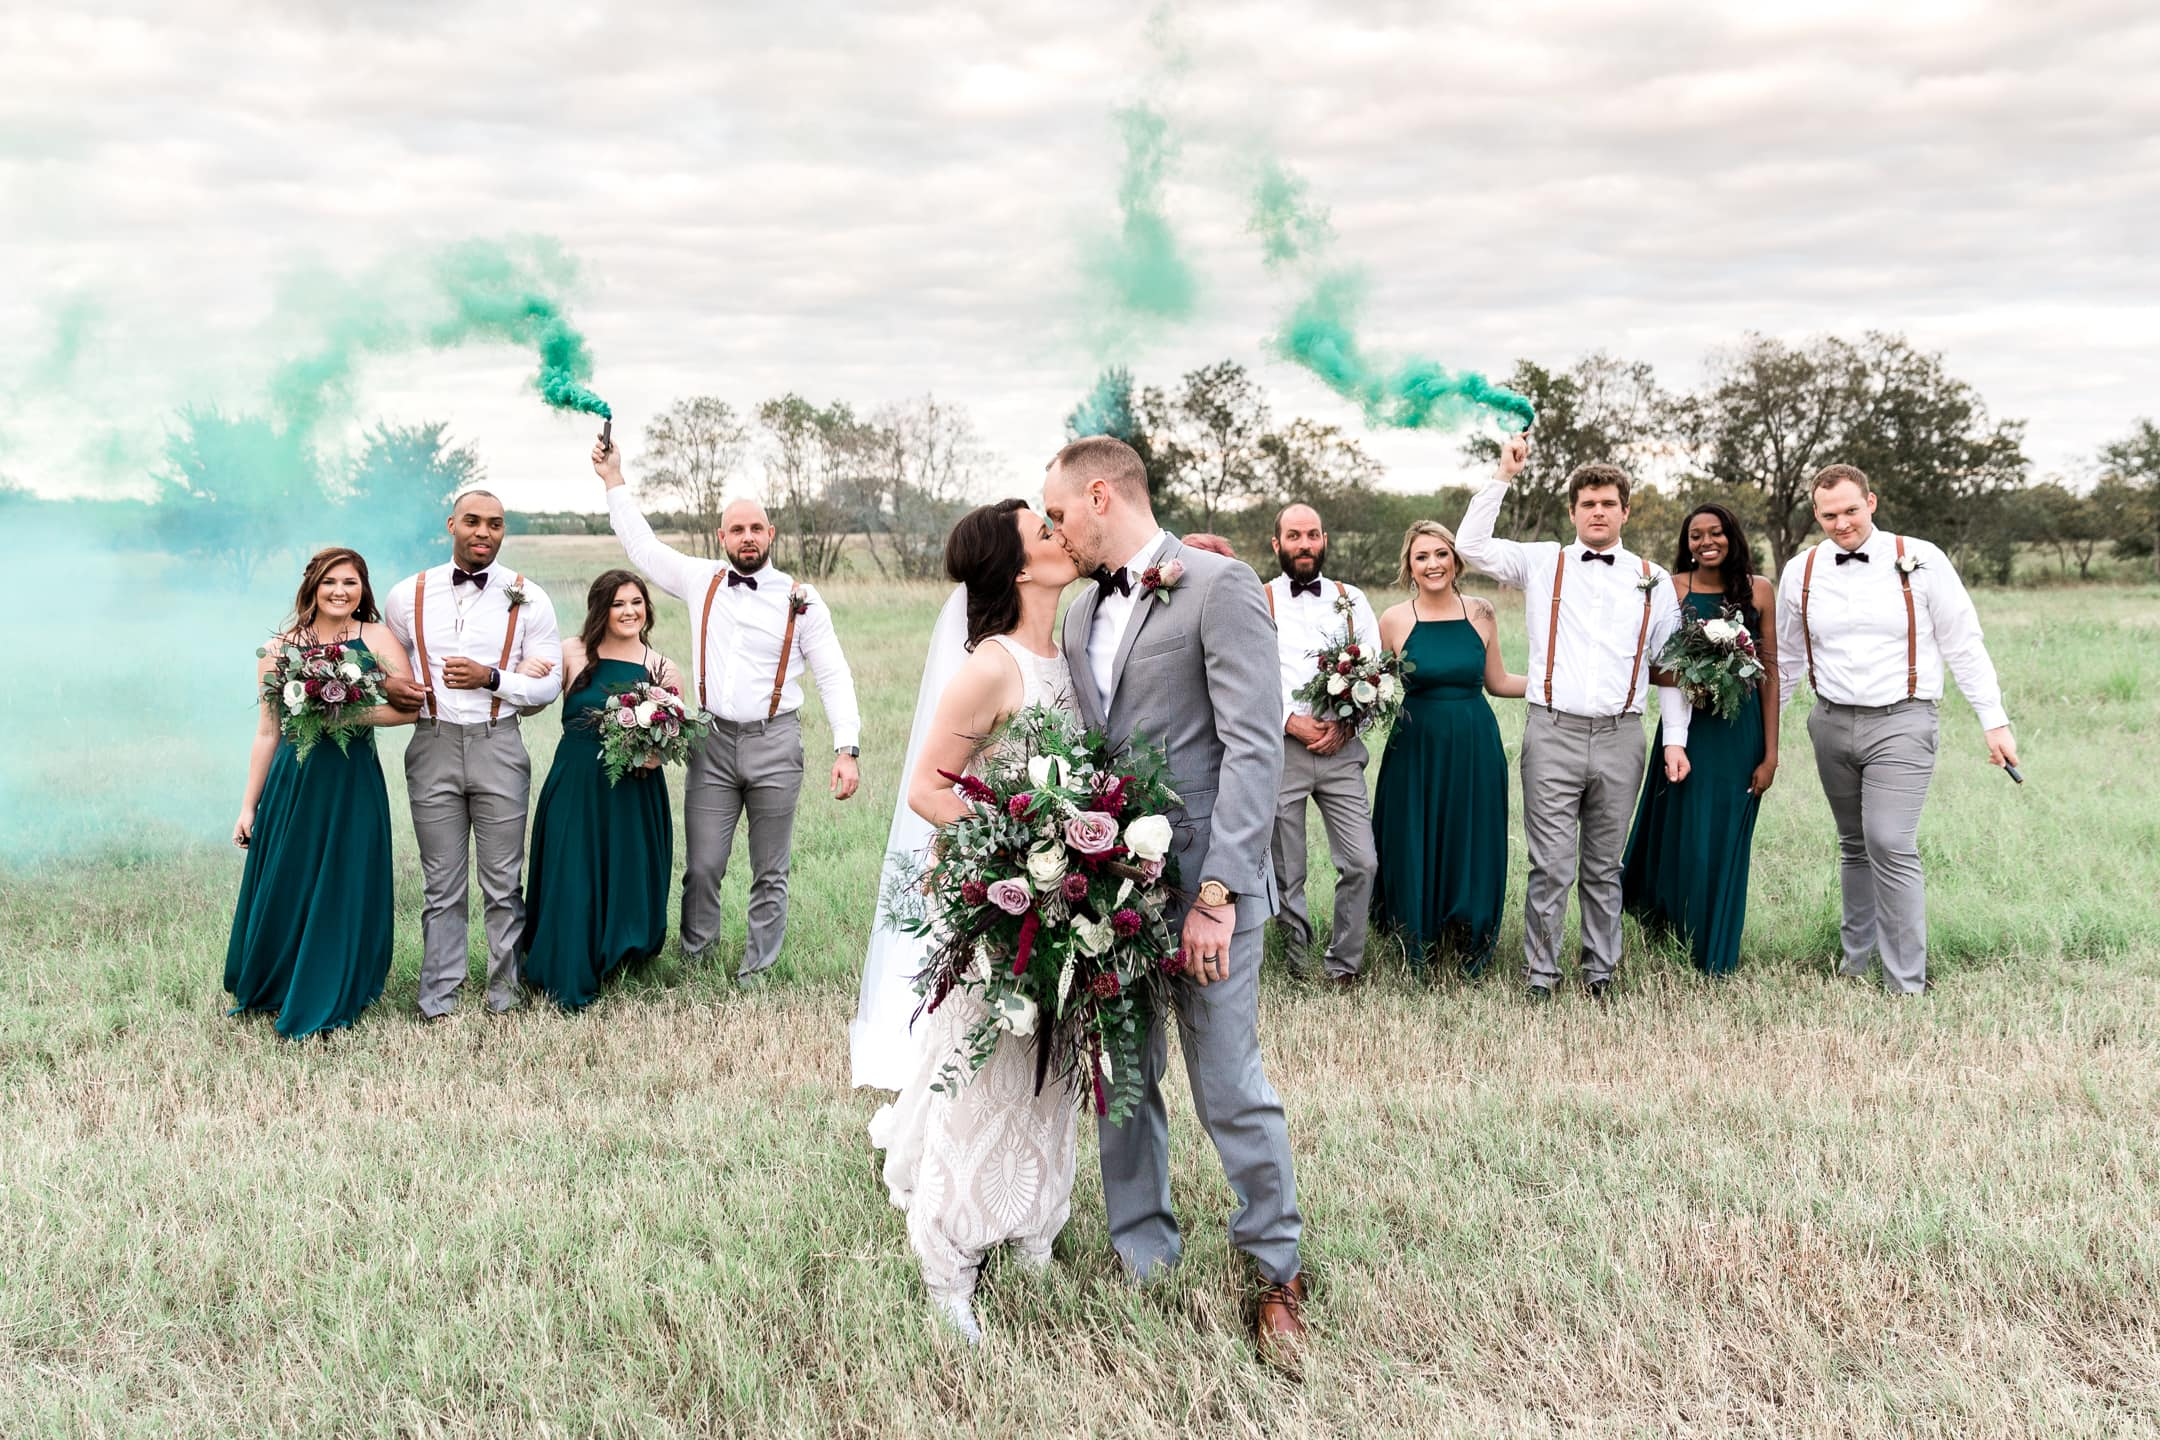 Couple kisses in a field while friends cheer and set off smoke bombs behind them